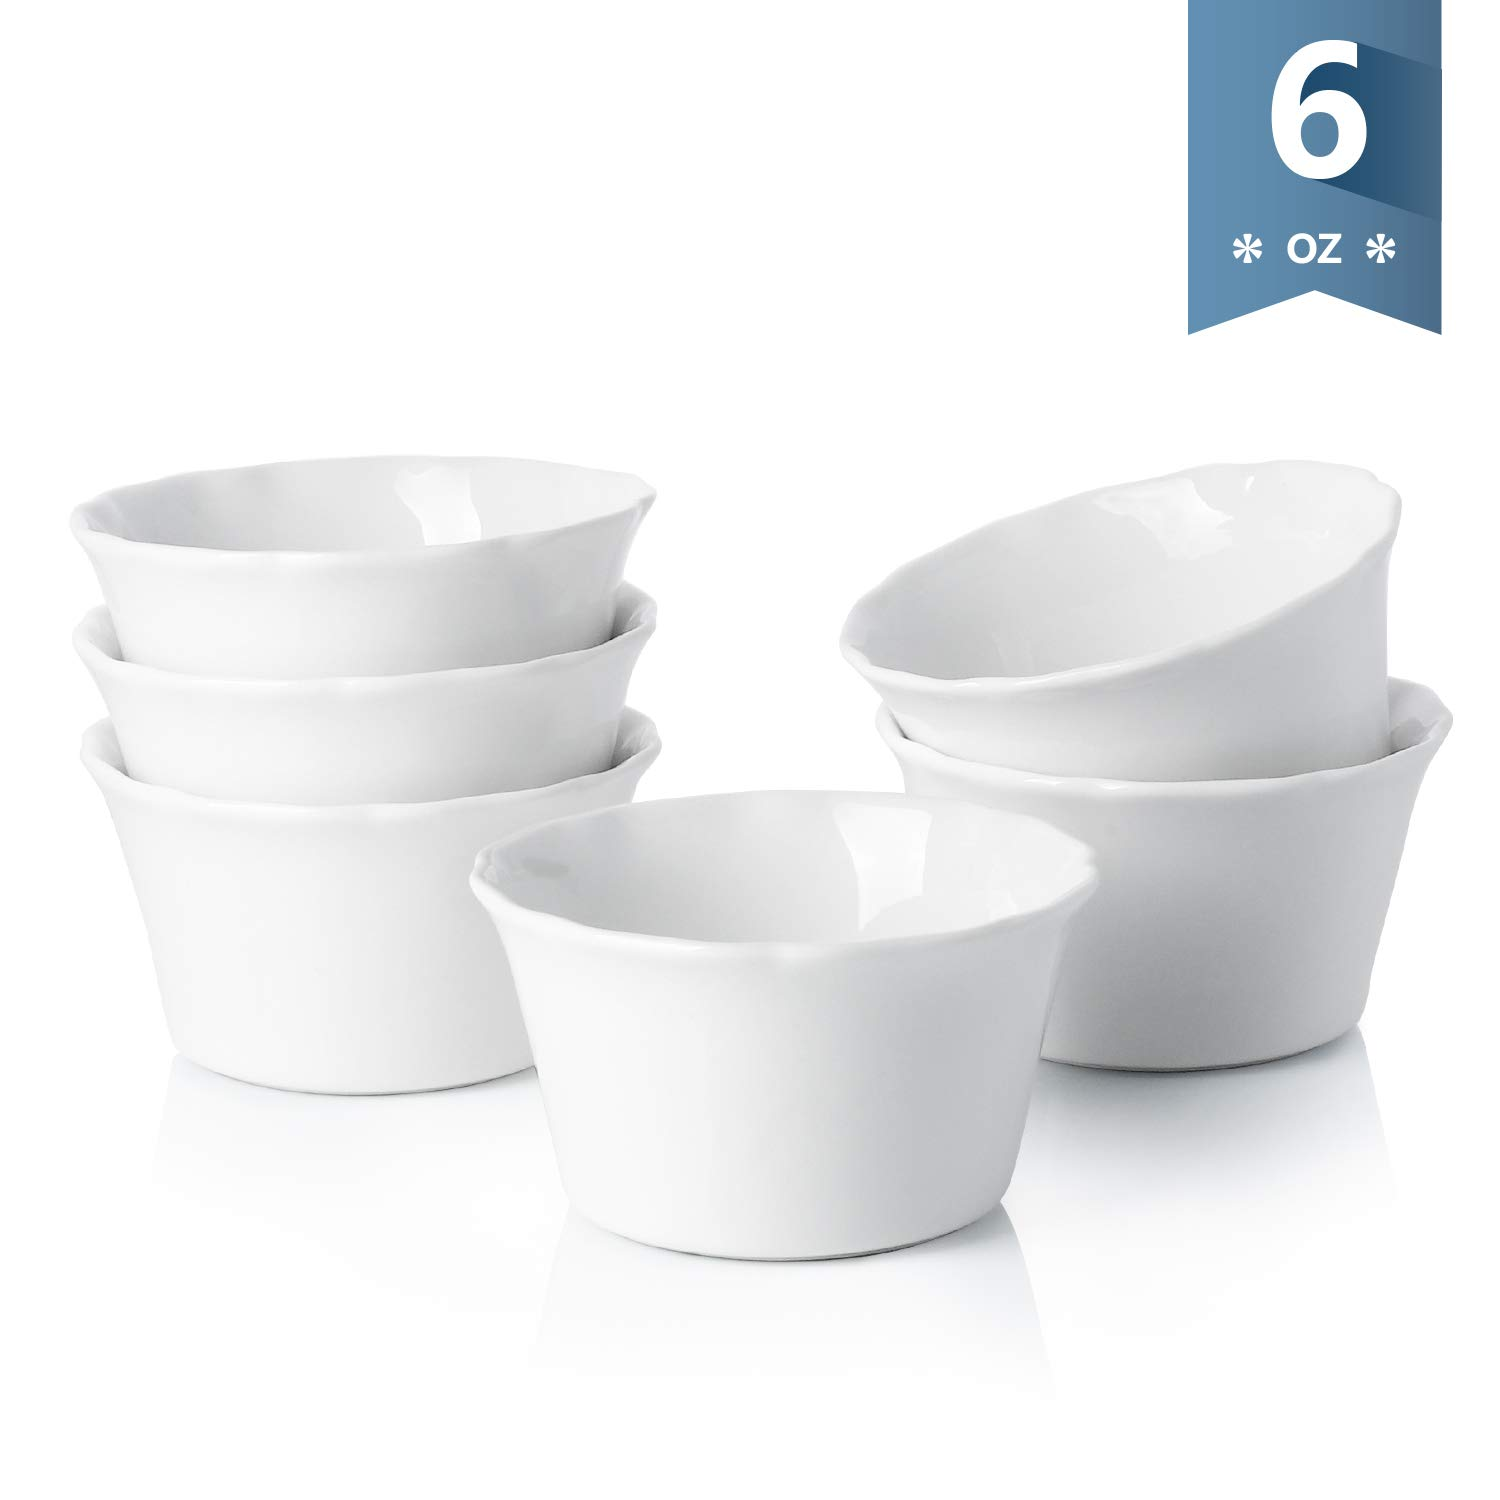 Sweese 511.001 Porcelain Souffle Dish, 6 Ounce Ramekins for Baking, Set of 6, White